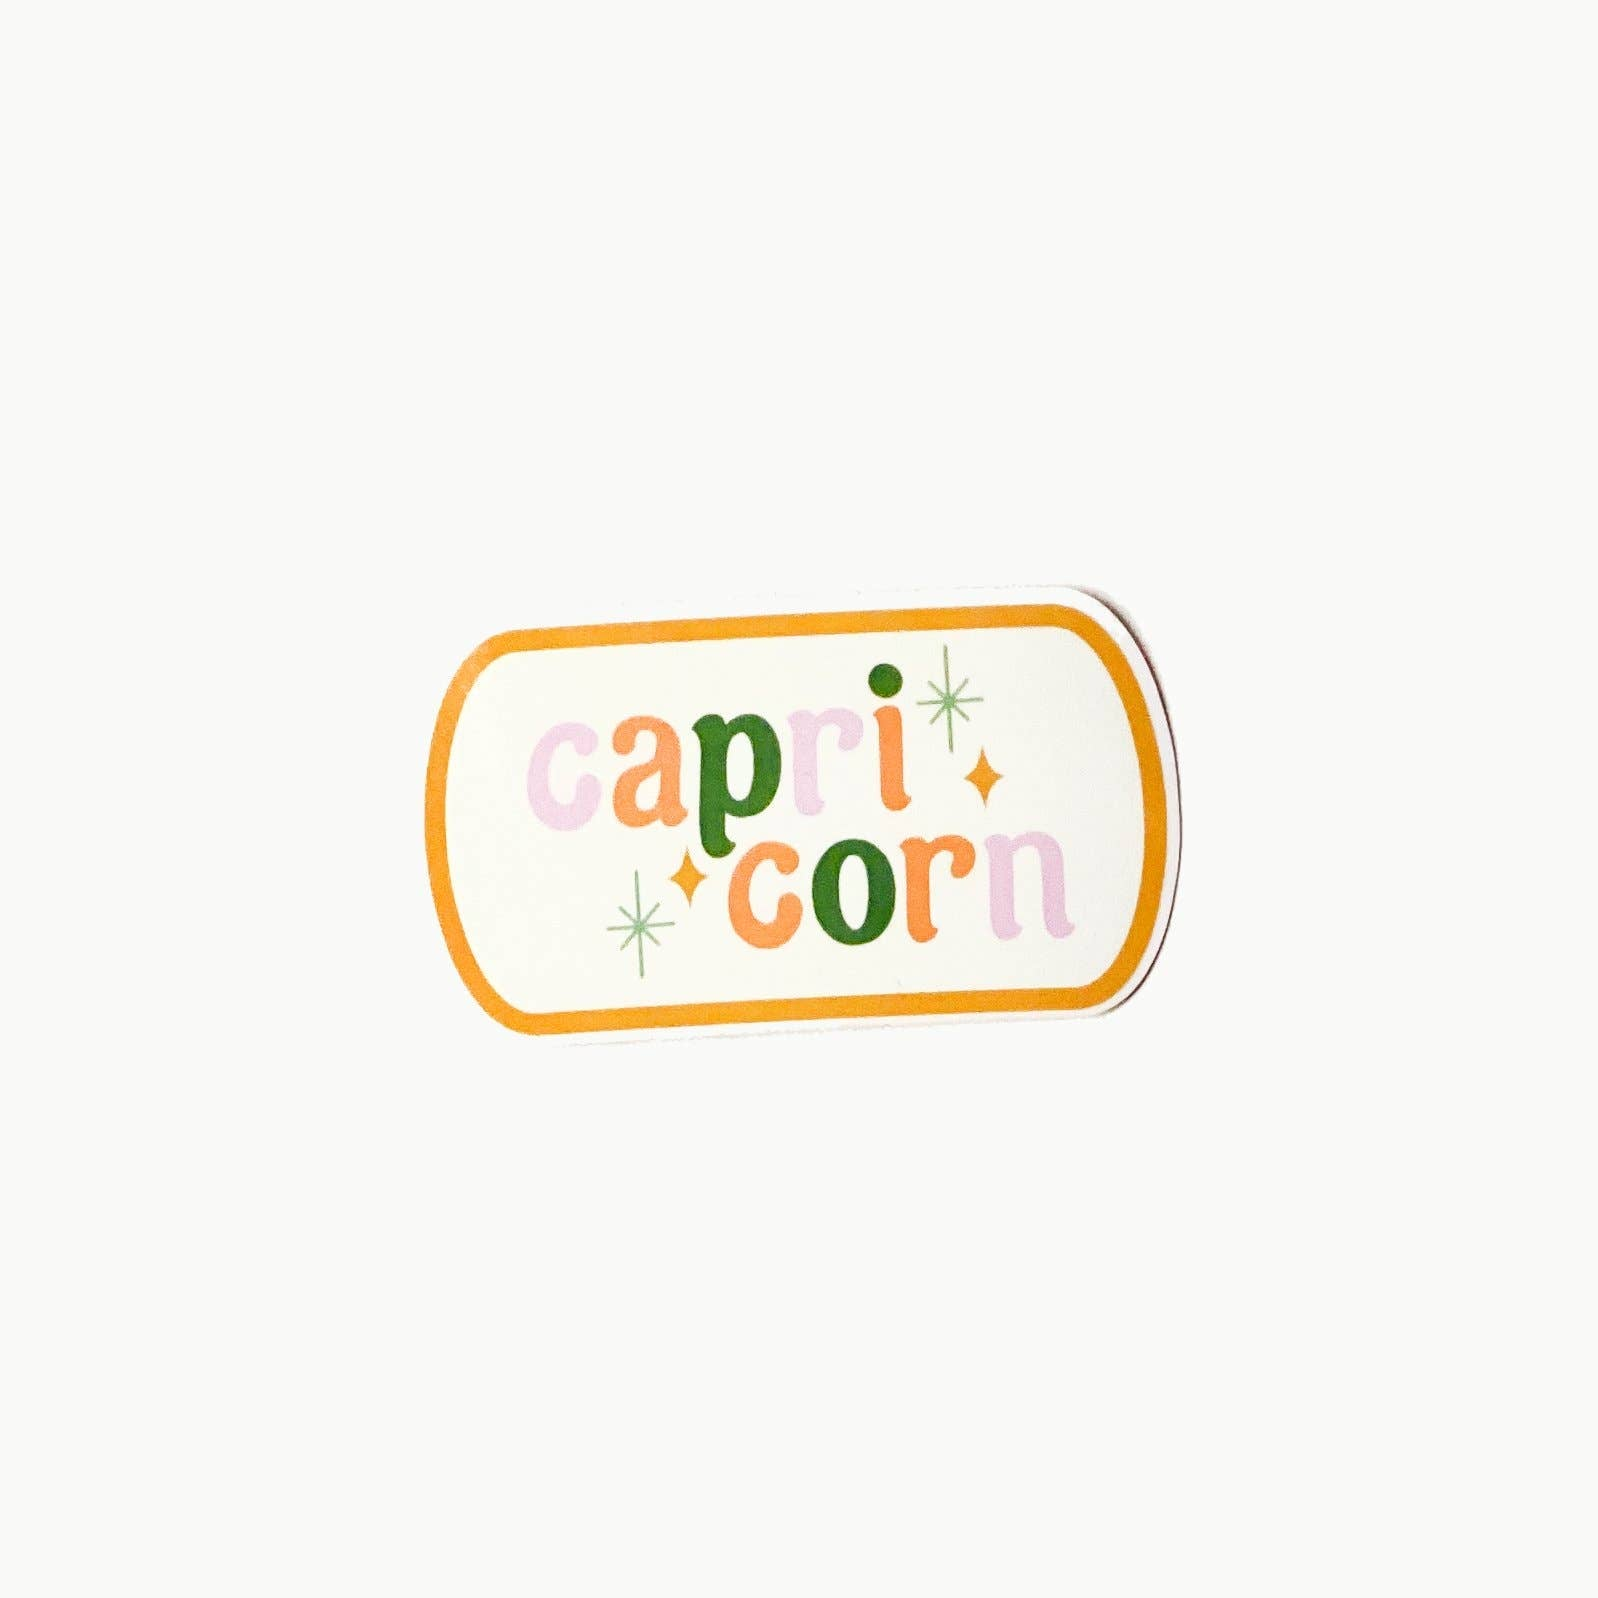 Capricorn Clear Die Cut Sticker